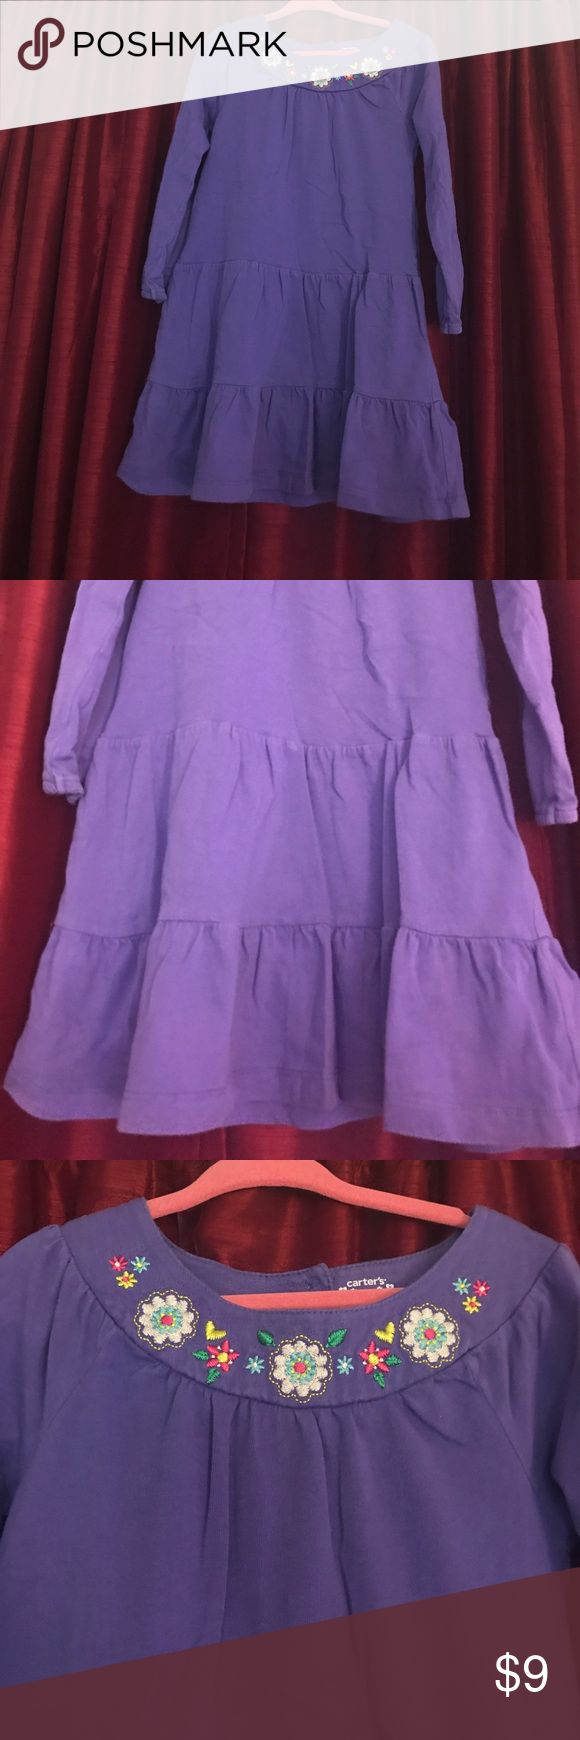 Pretty purple long sleeve dress 👗 purple long sleeve dress 👗 beautiful embroided flowers on neckline. Size 4 from Carter's. In great condition, no stains. Used only a few times as seen on pictures.  Bundle and SAVE! Carter's Dresses Casual